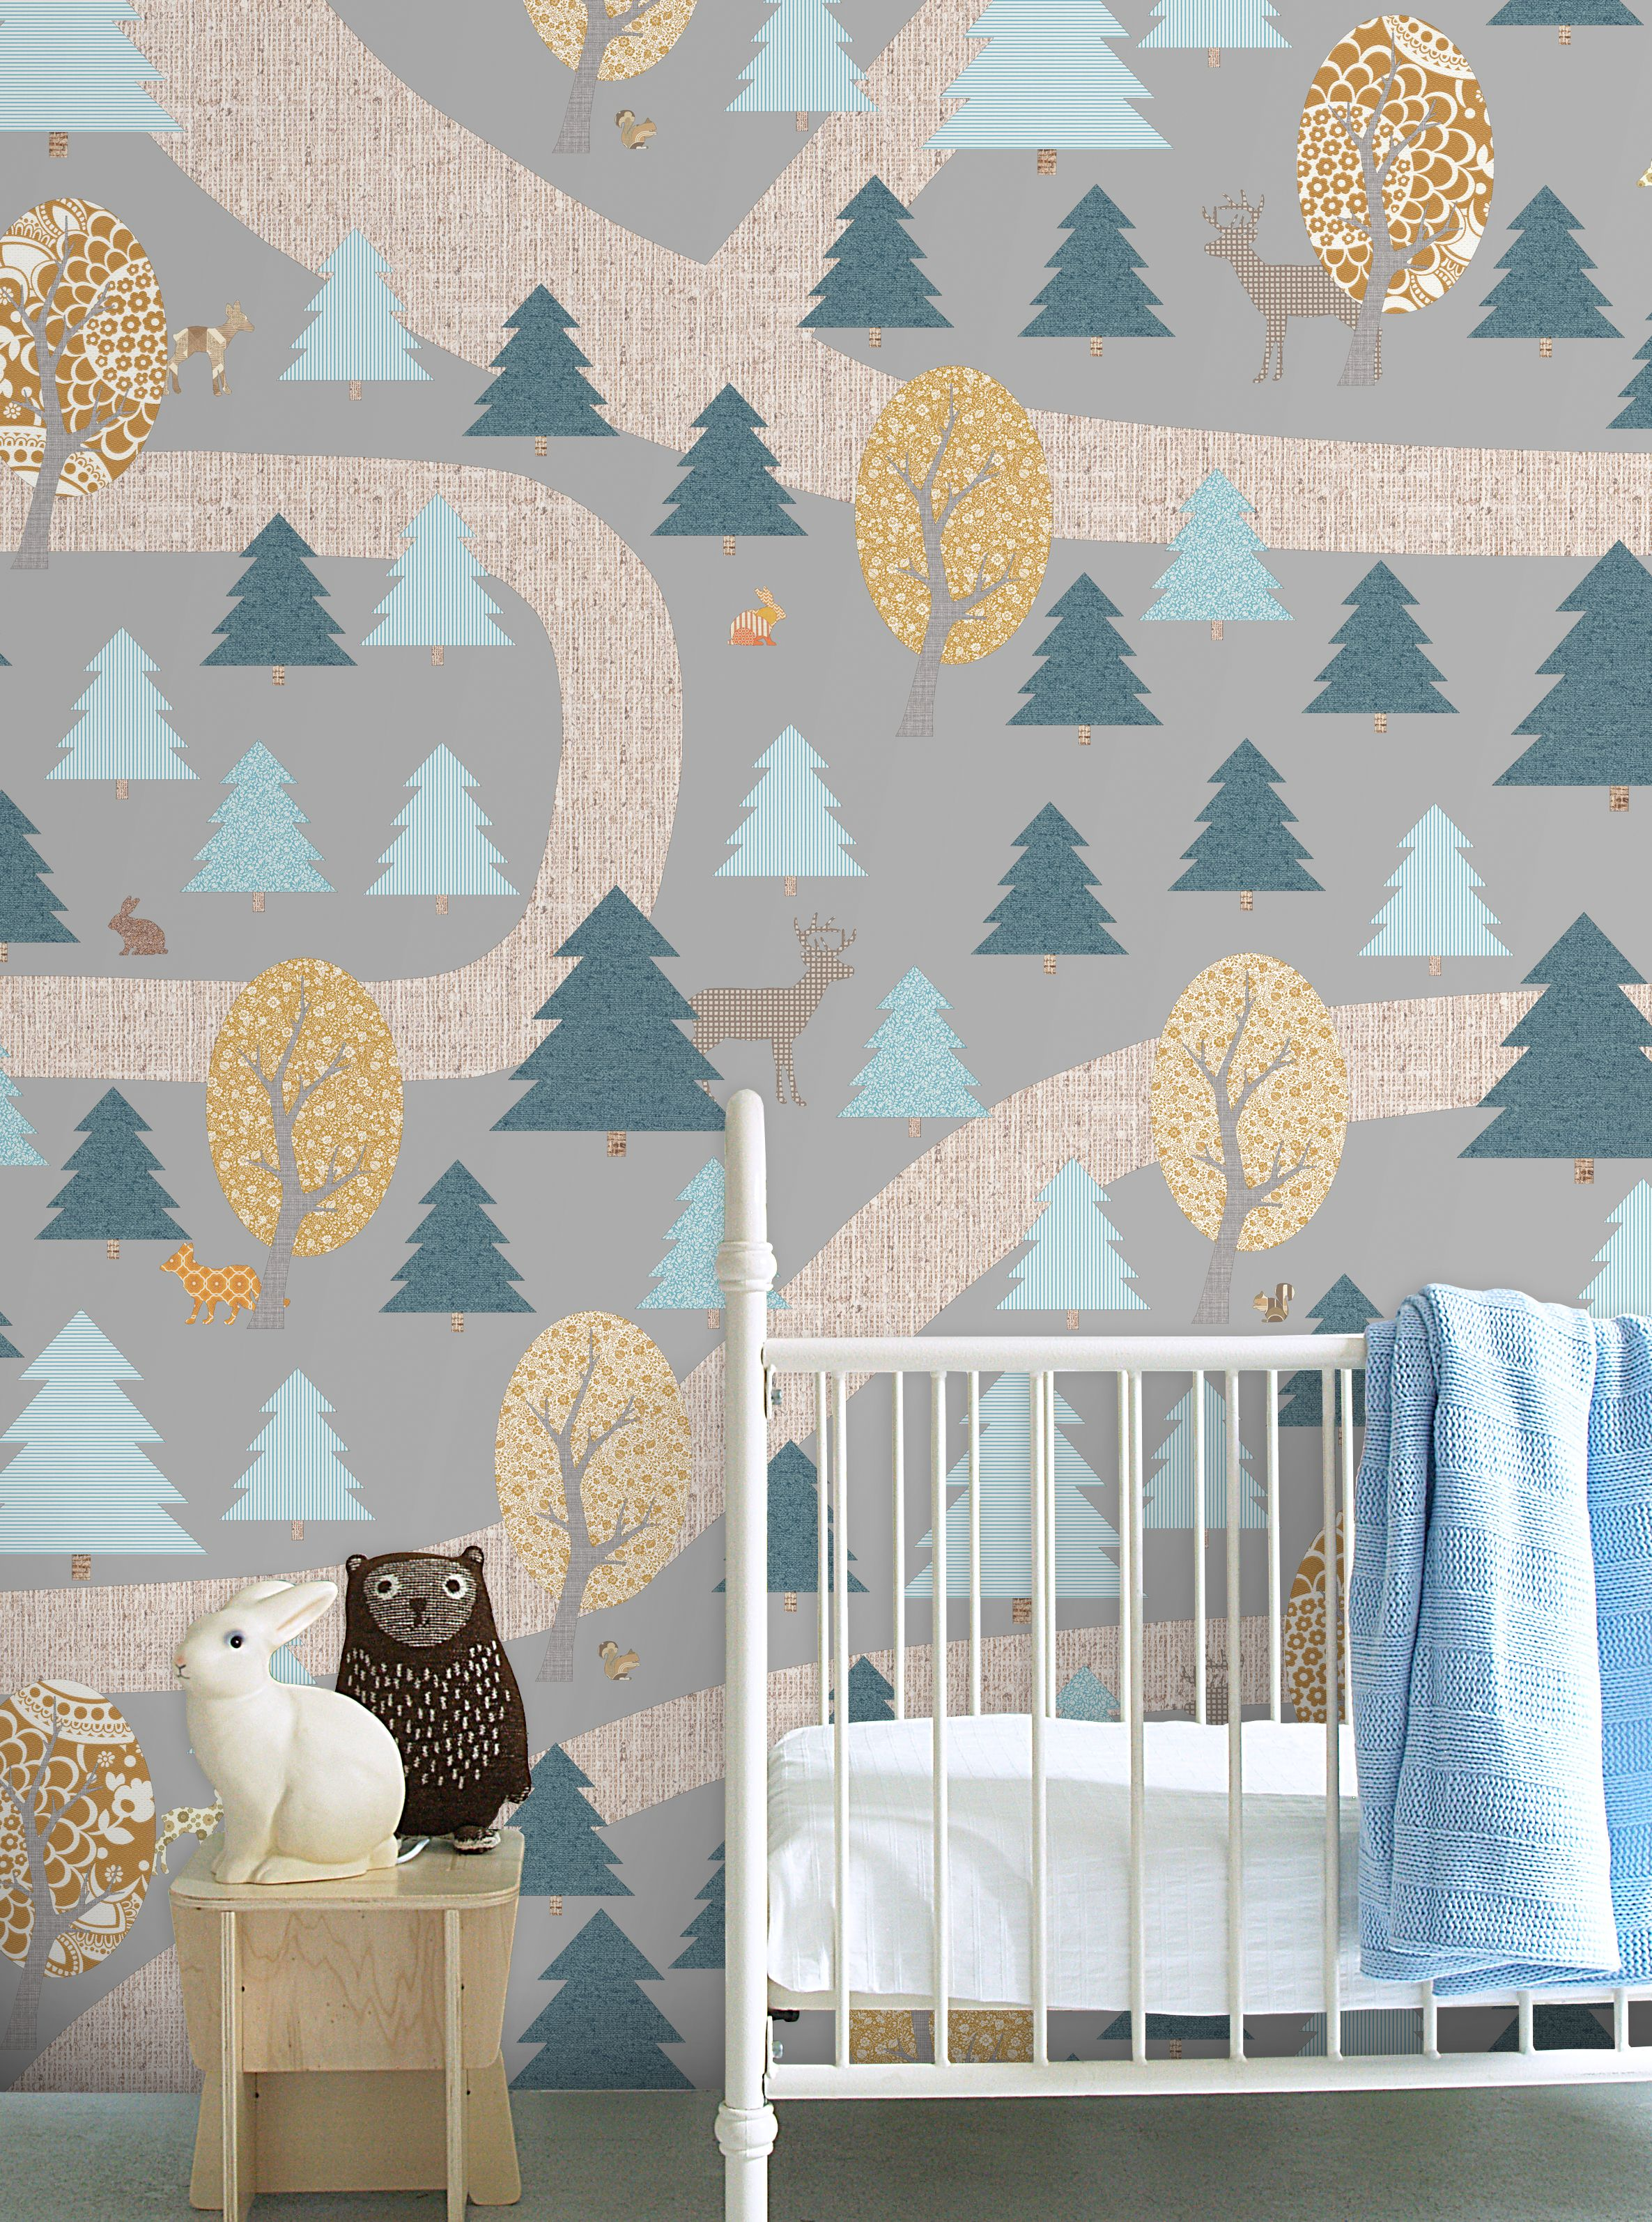 Fantastic wallpaper design that takes you into a wonderful woodland world Woodland Wallpaper by Inke